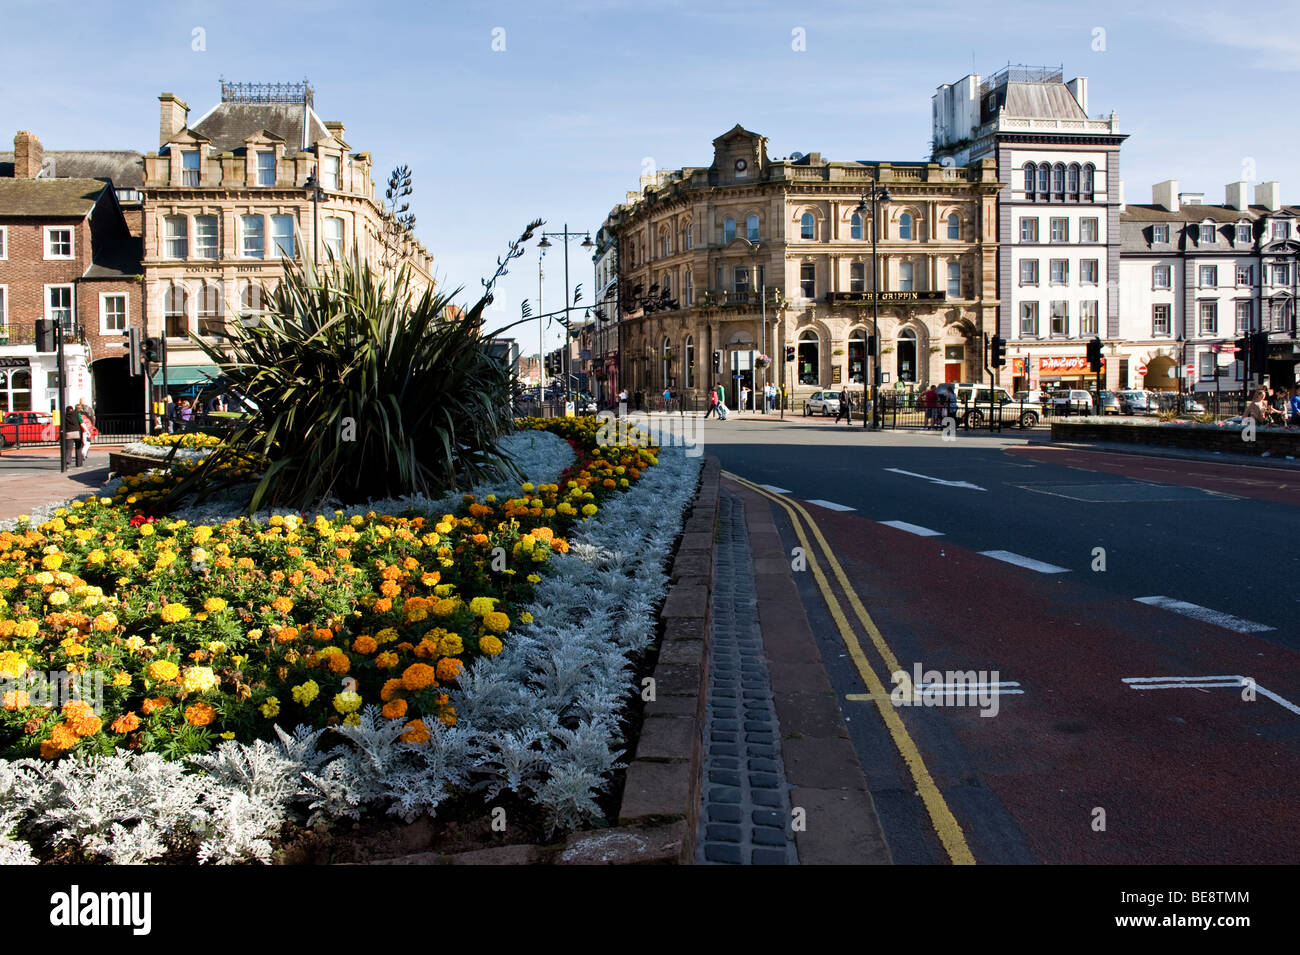 Carlisle City Center, the most northerly English city in the UK - Stock Image